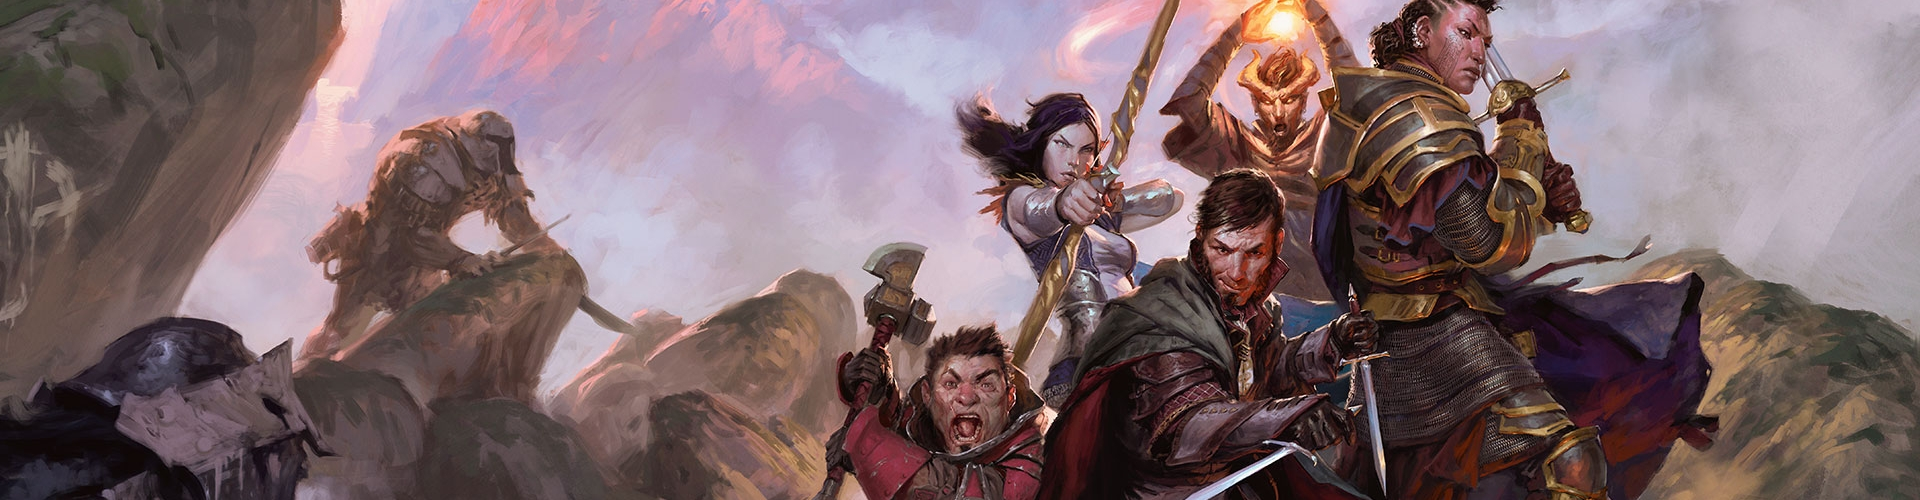 """D&D and Theater Collide in """"She Kills Monsters"""""""